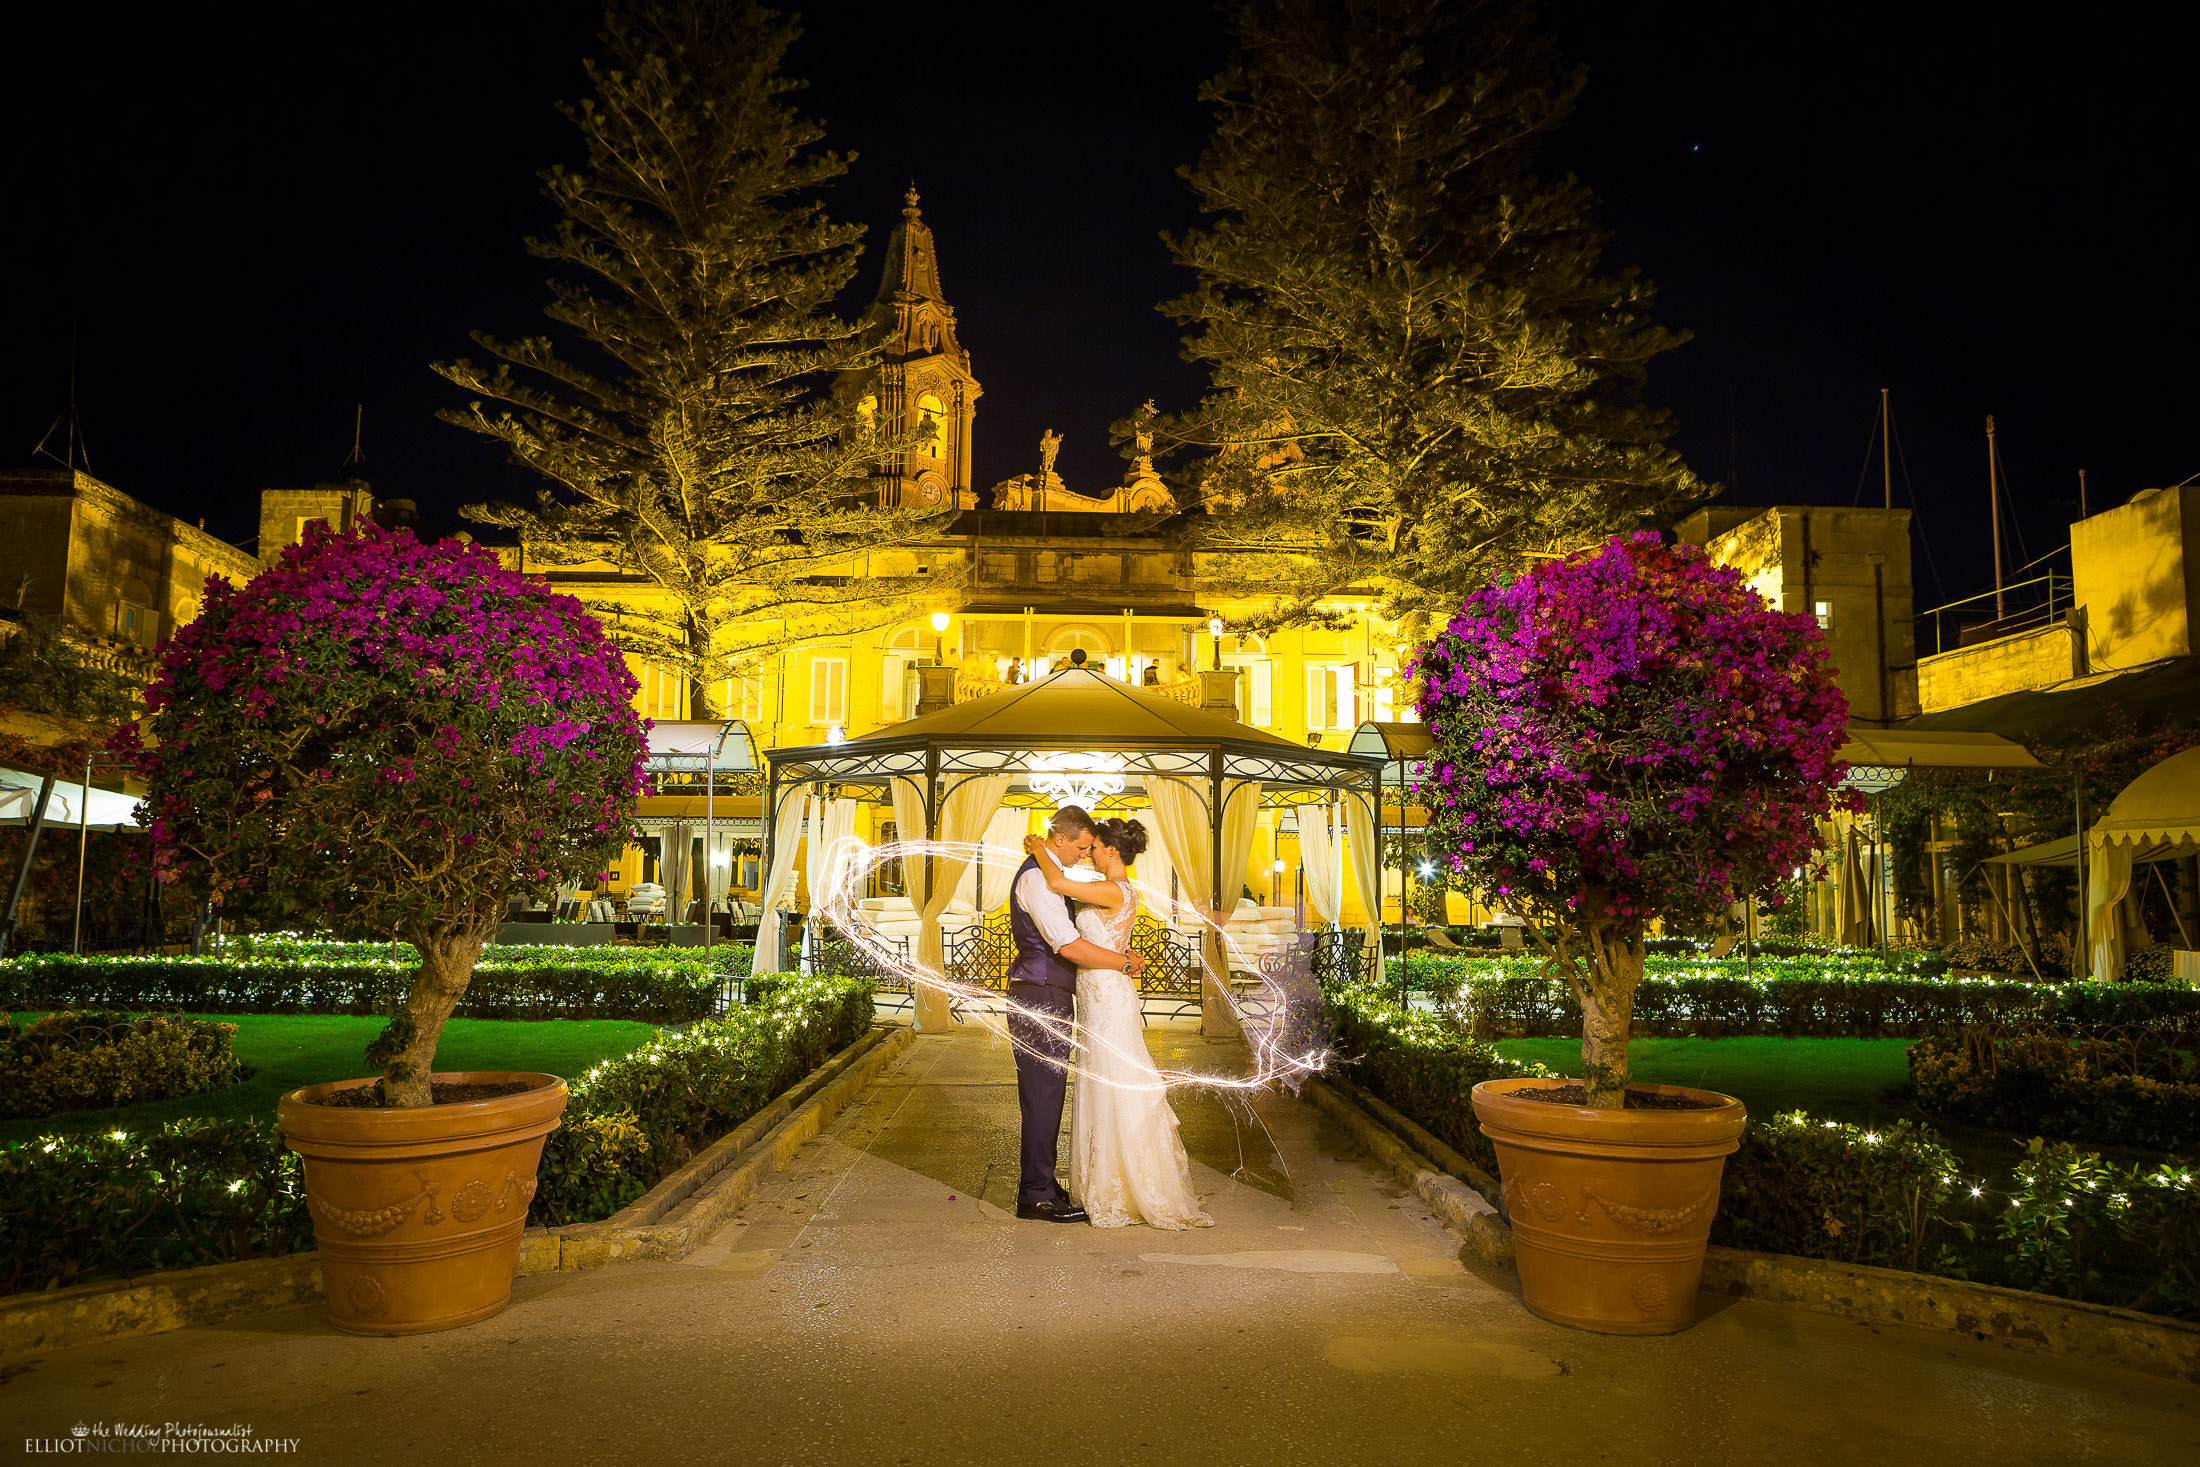 Bride and groom's midnight portrait in the gardens of their destination wedding venue. Photo by Elliot Nichol Photography.